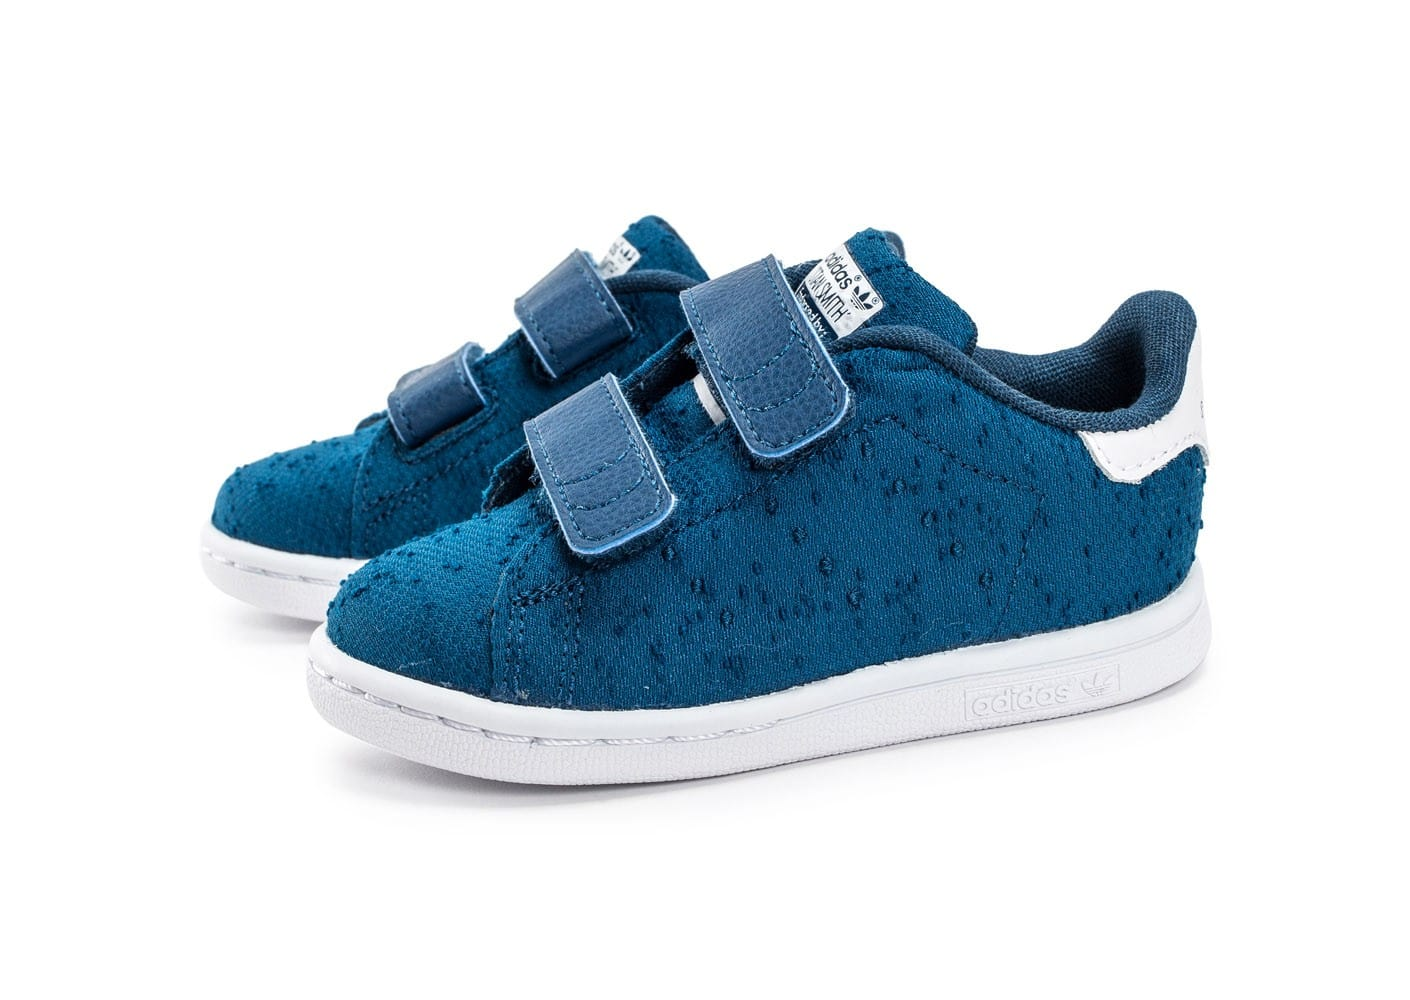 adidas stan smith cf textile b b bleue chaussures adidas chausport. Black Bedroom Furniture Sets. Home Design Ideas